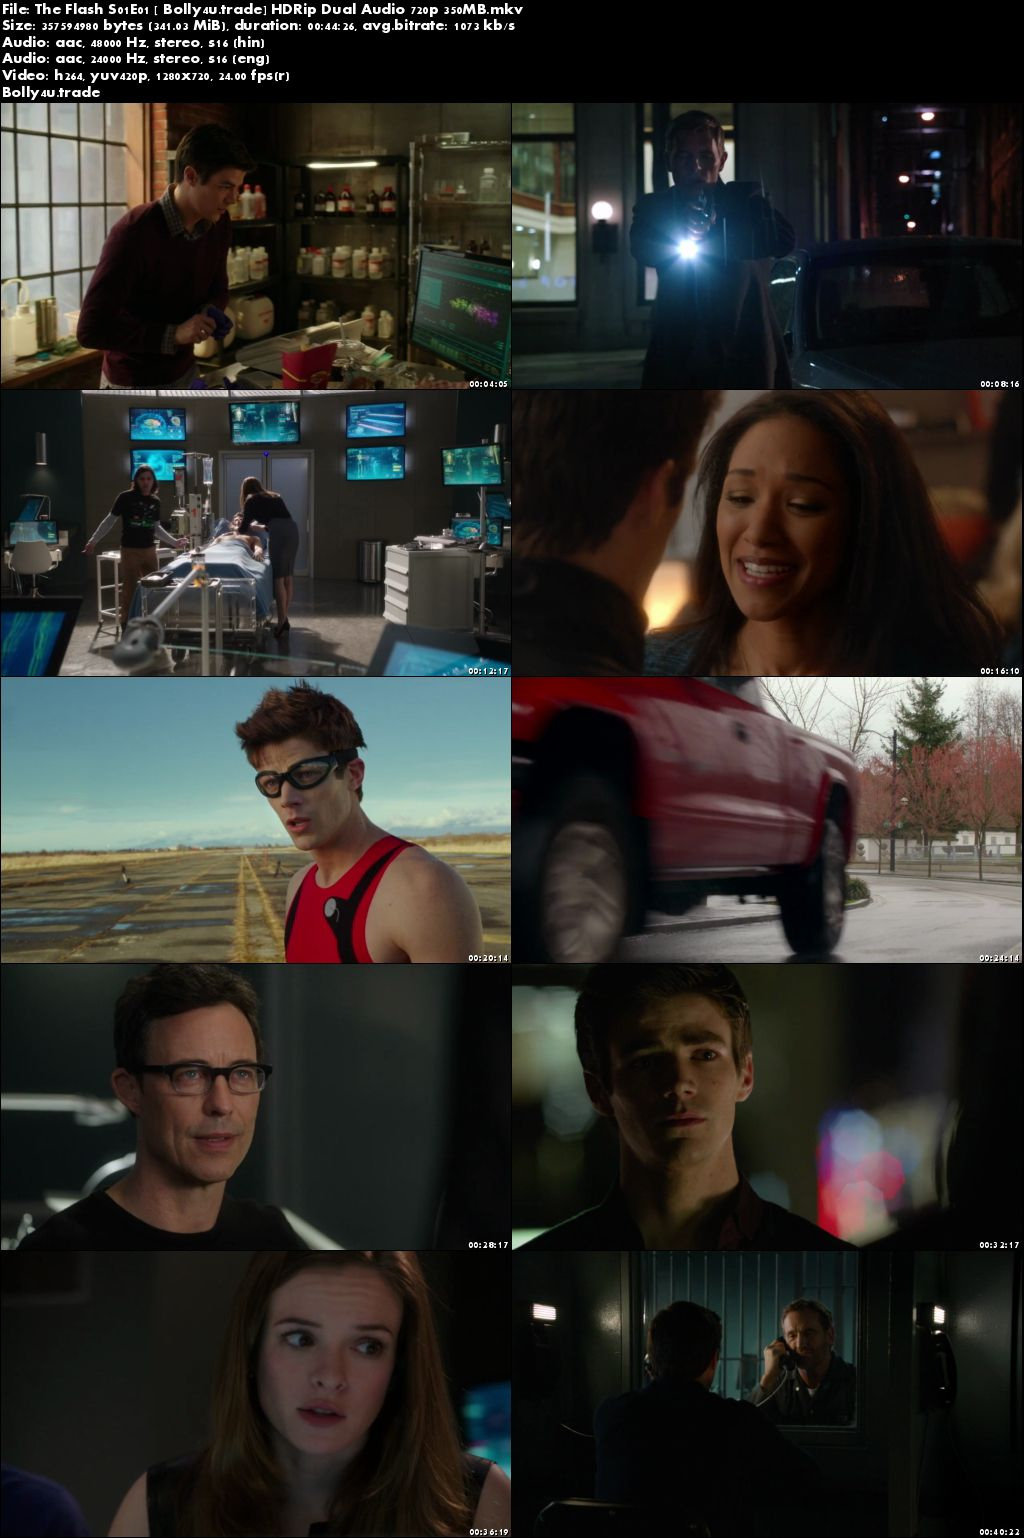 The Flash S01E01 BluRay 350MB Hindi Dual Audio 720p Download